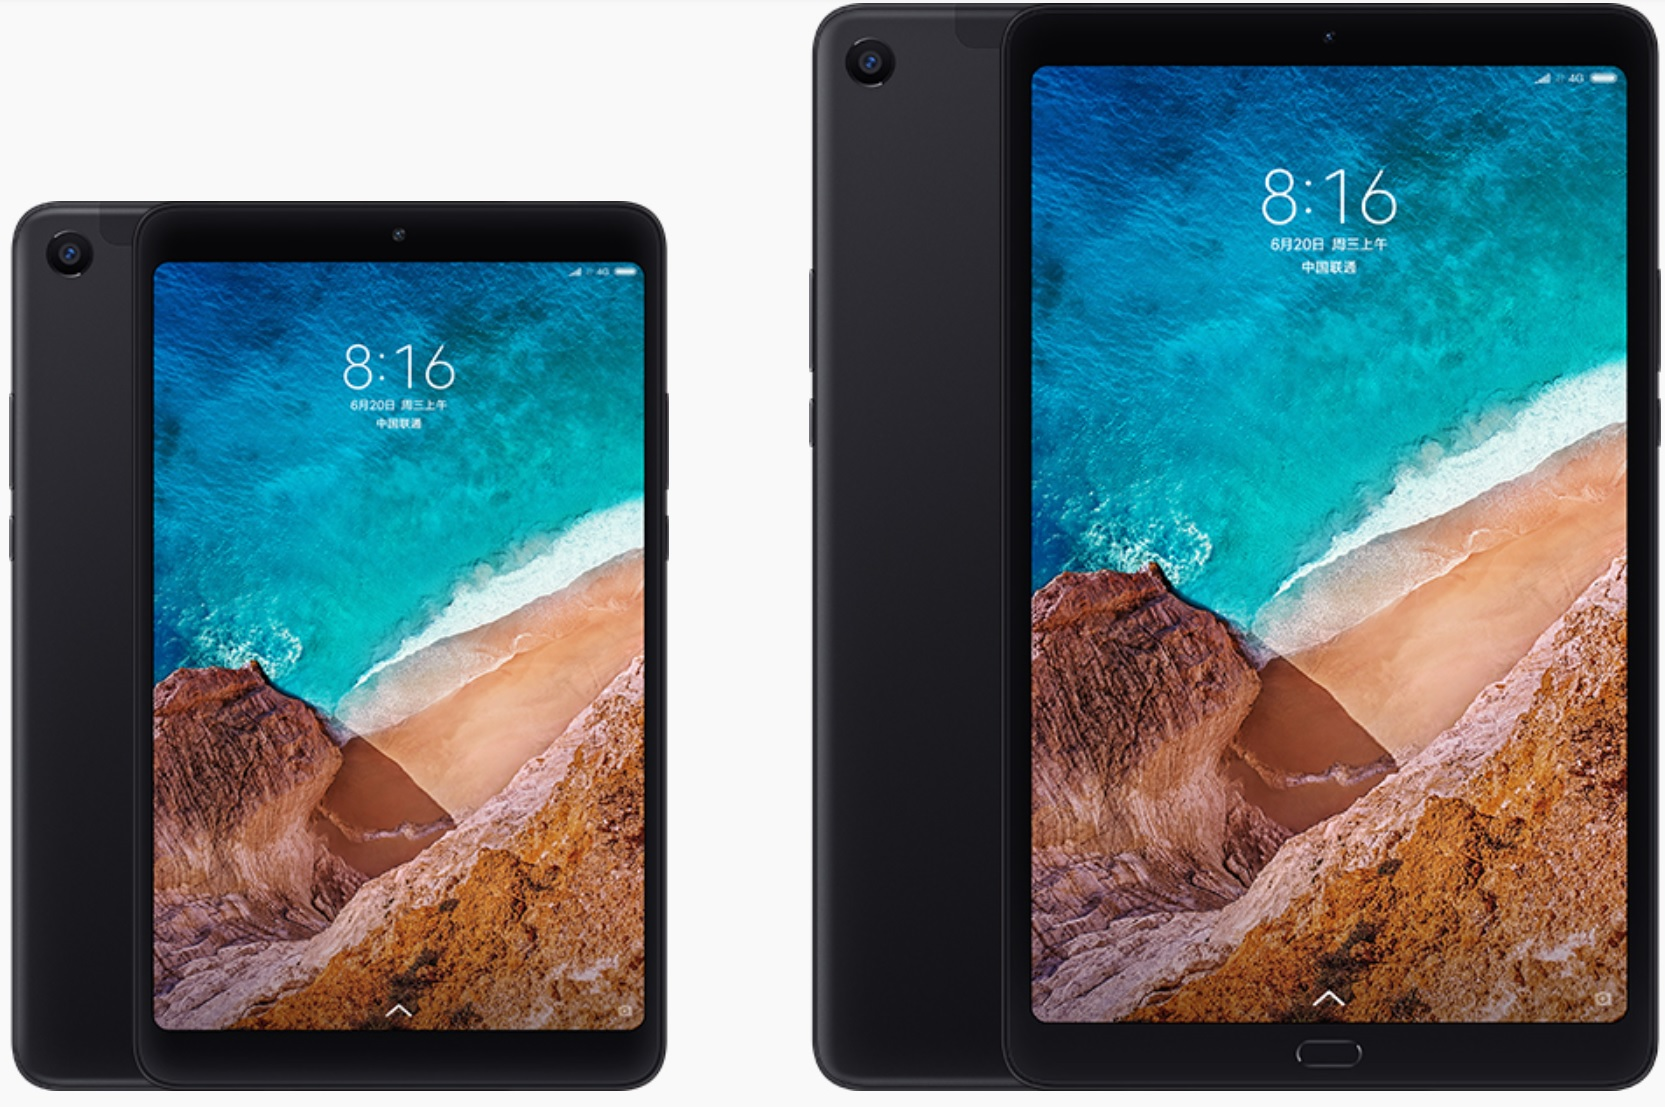 Xiaomi Mi Pad, Xiaomi, , Xiaomi Mi4, Xiaomi Mi 1, Qualcomm Snapdragon, Xiaomi Mi Pad 3, MIUI 9, Touchscreen, Wi-Fi, xiaomi mi pad 4, gadget, technology, electronic device, mobile phone, display device, tablet computer, screen, multimedia, smartphone, portable communications device